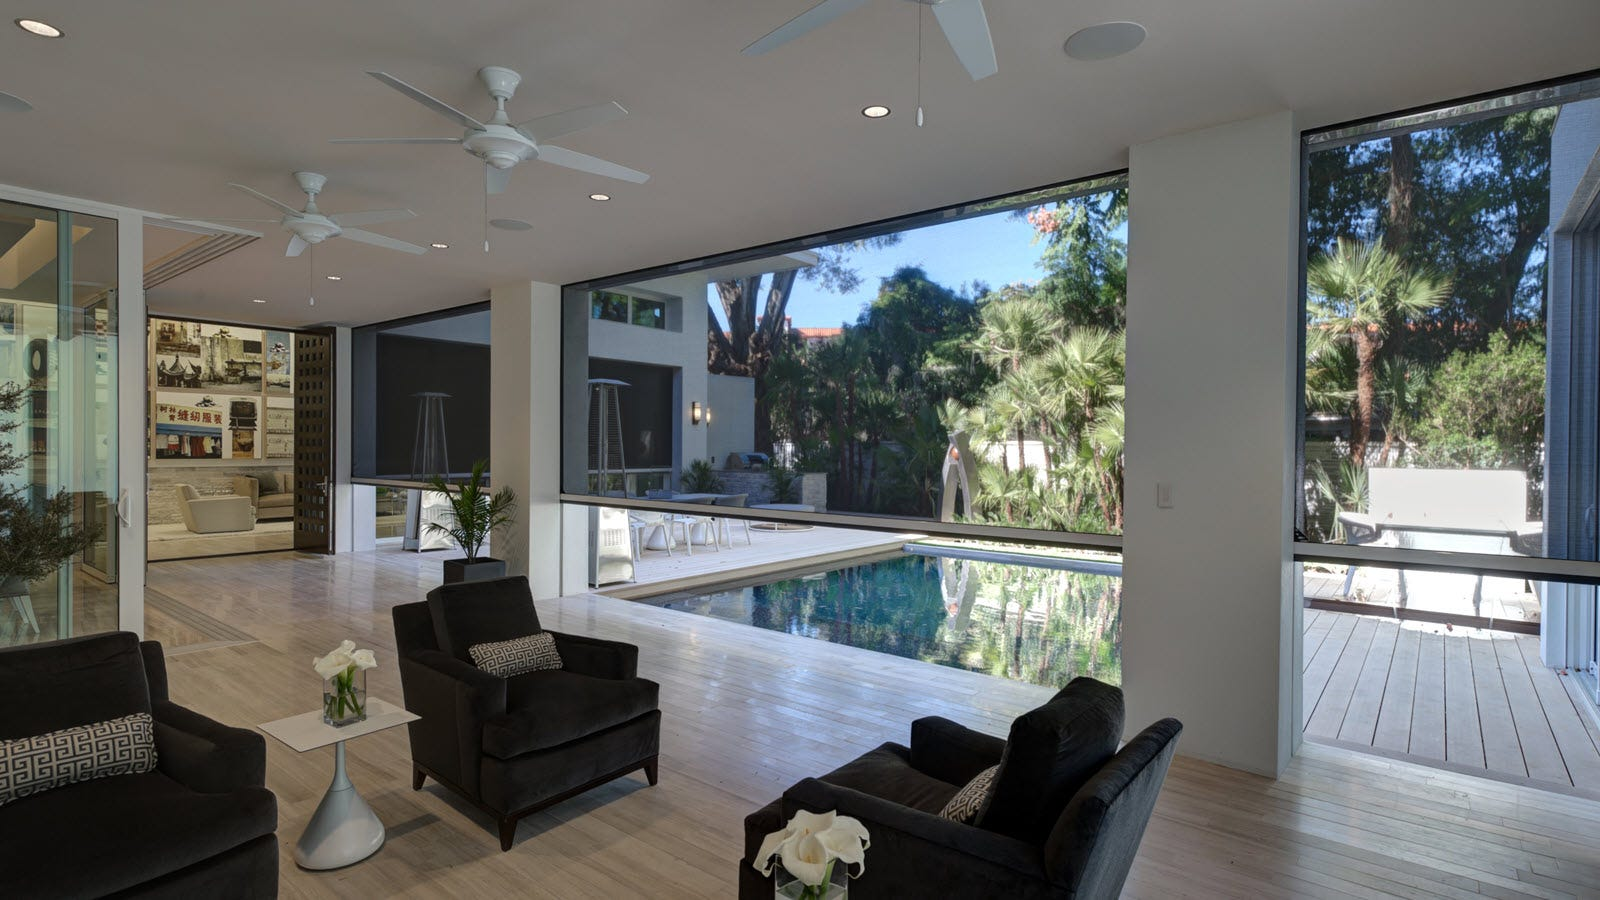 Smart blinds lower in a living room.